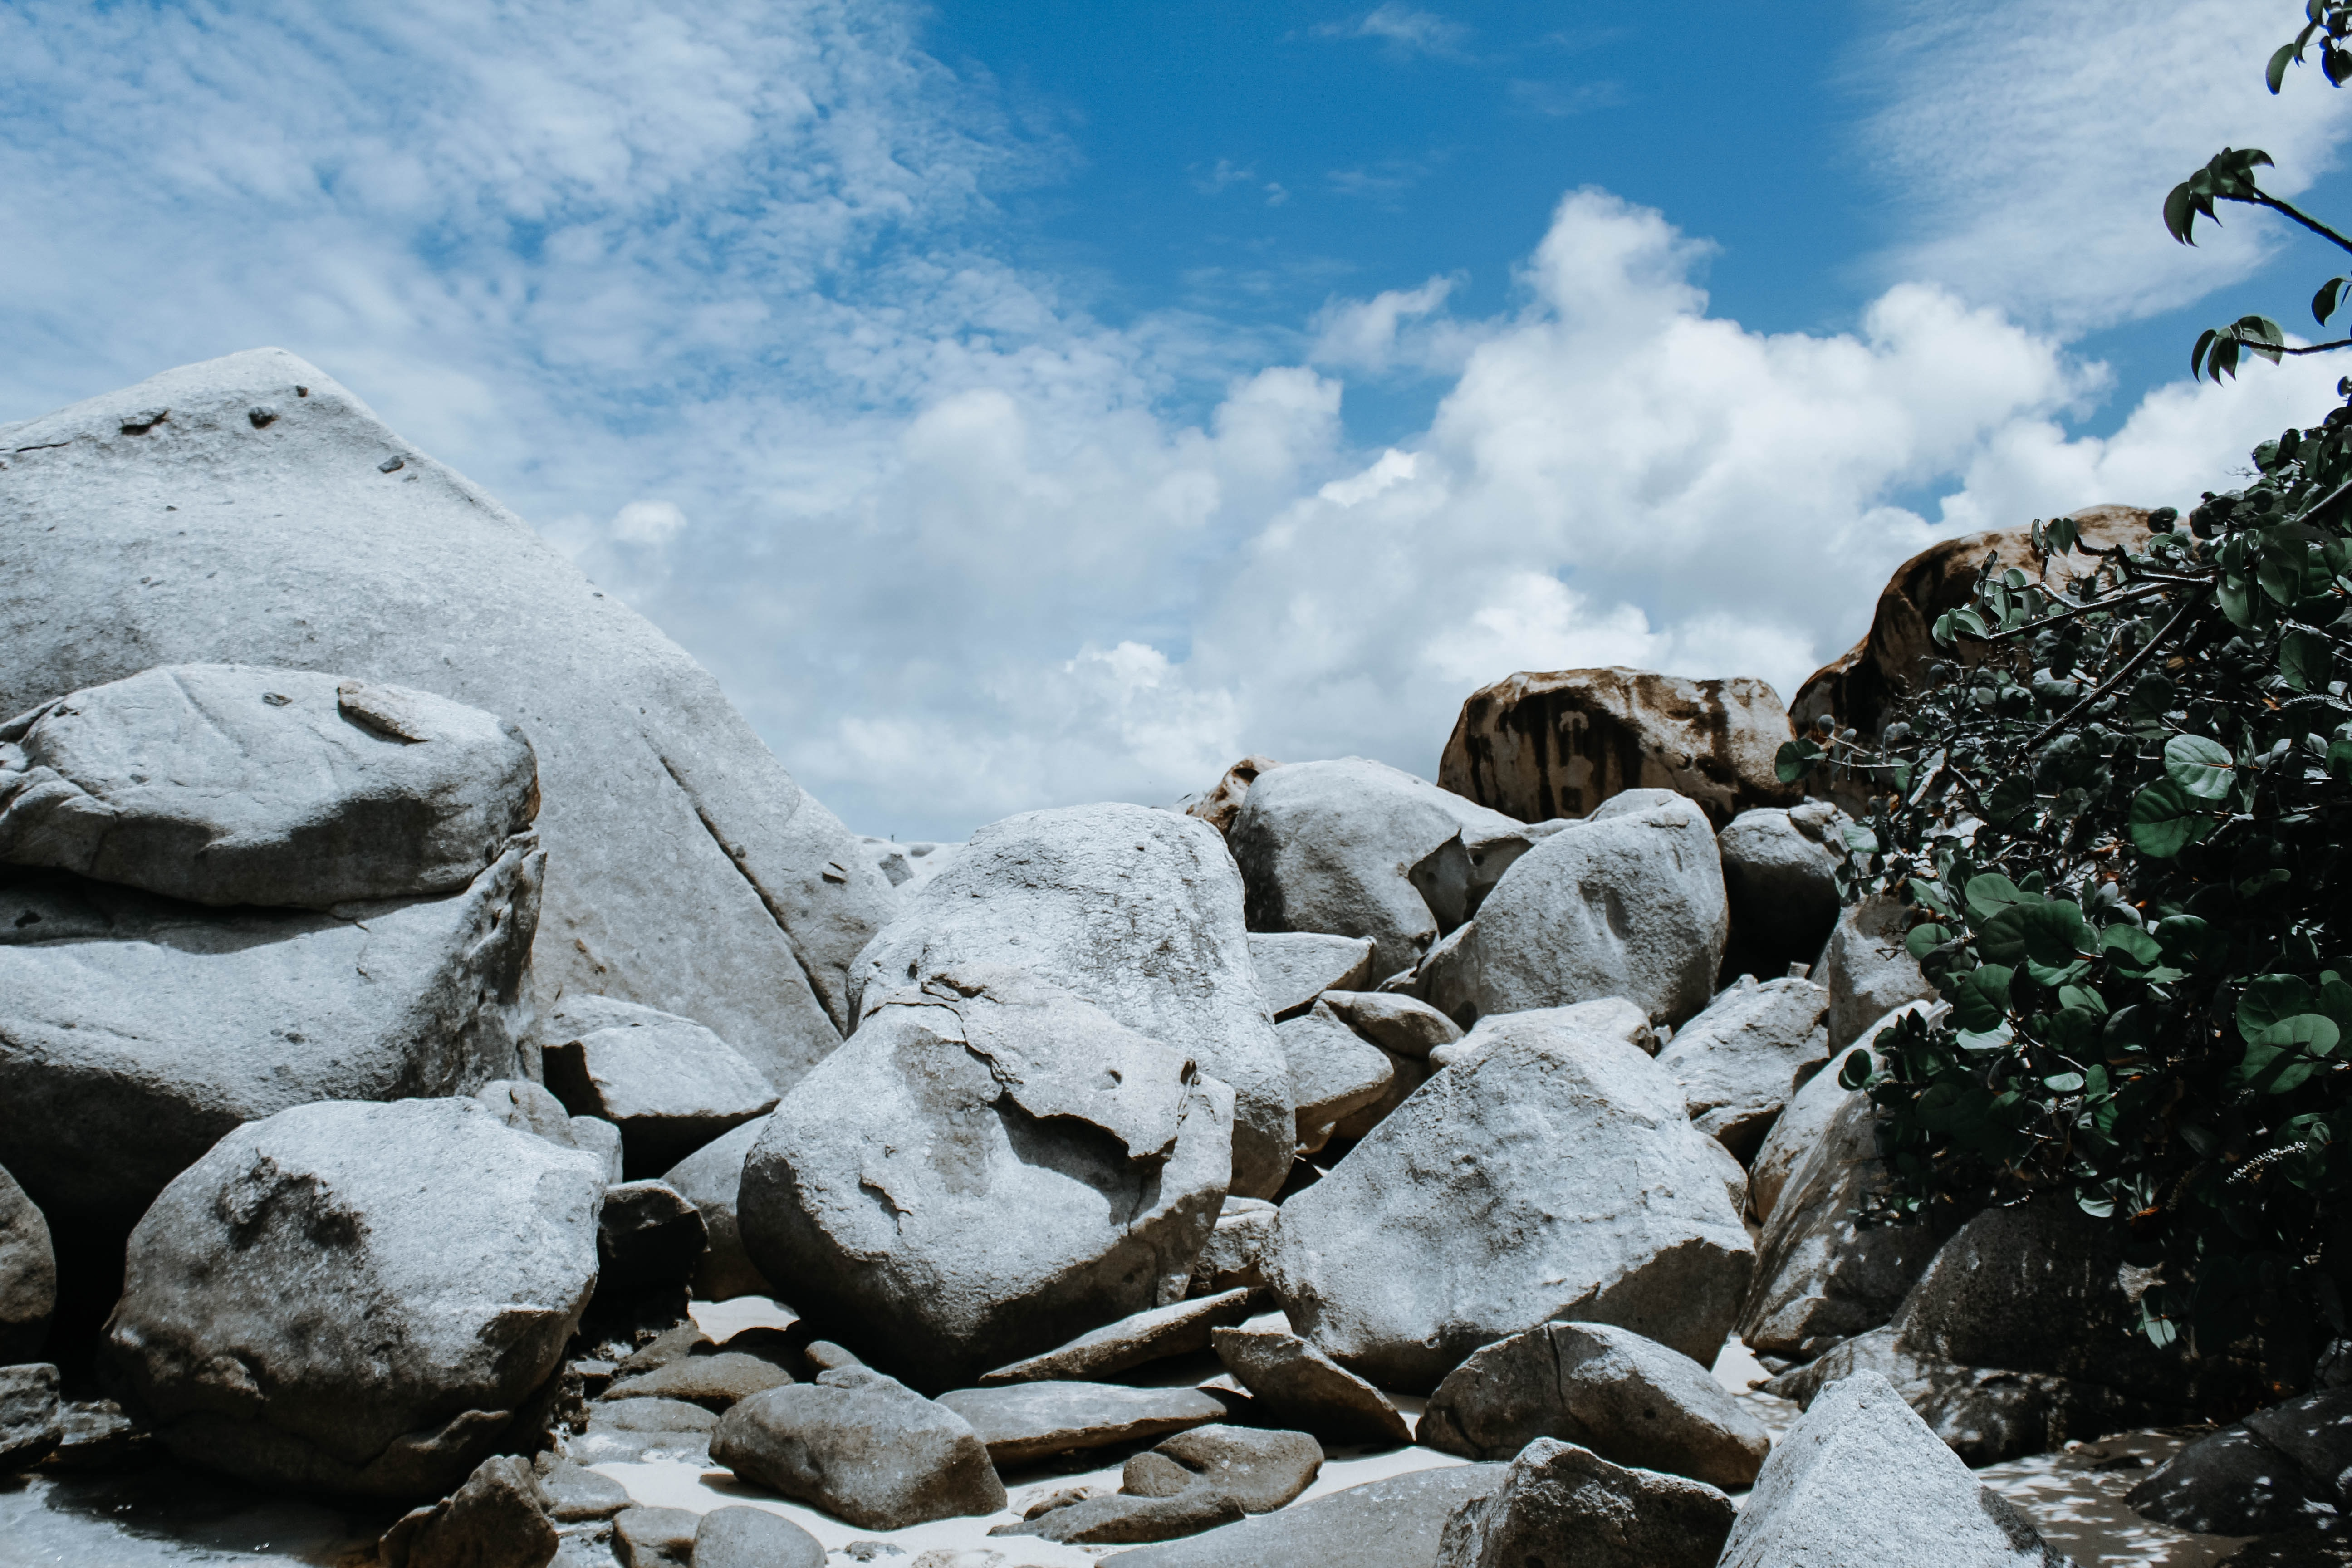 grey stacked stones and boulders at daytime